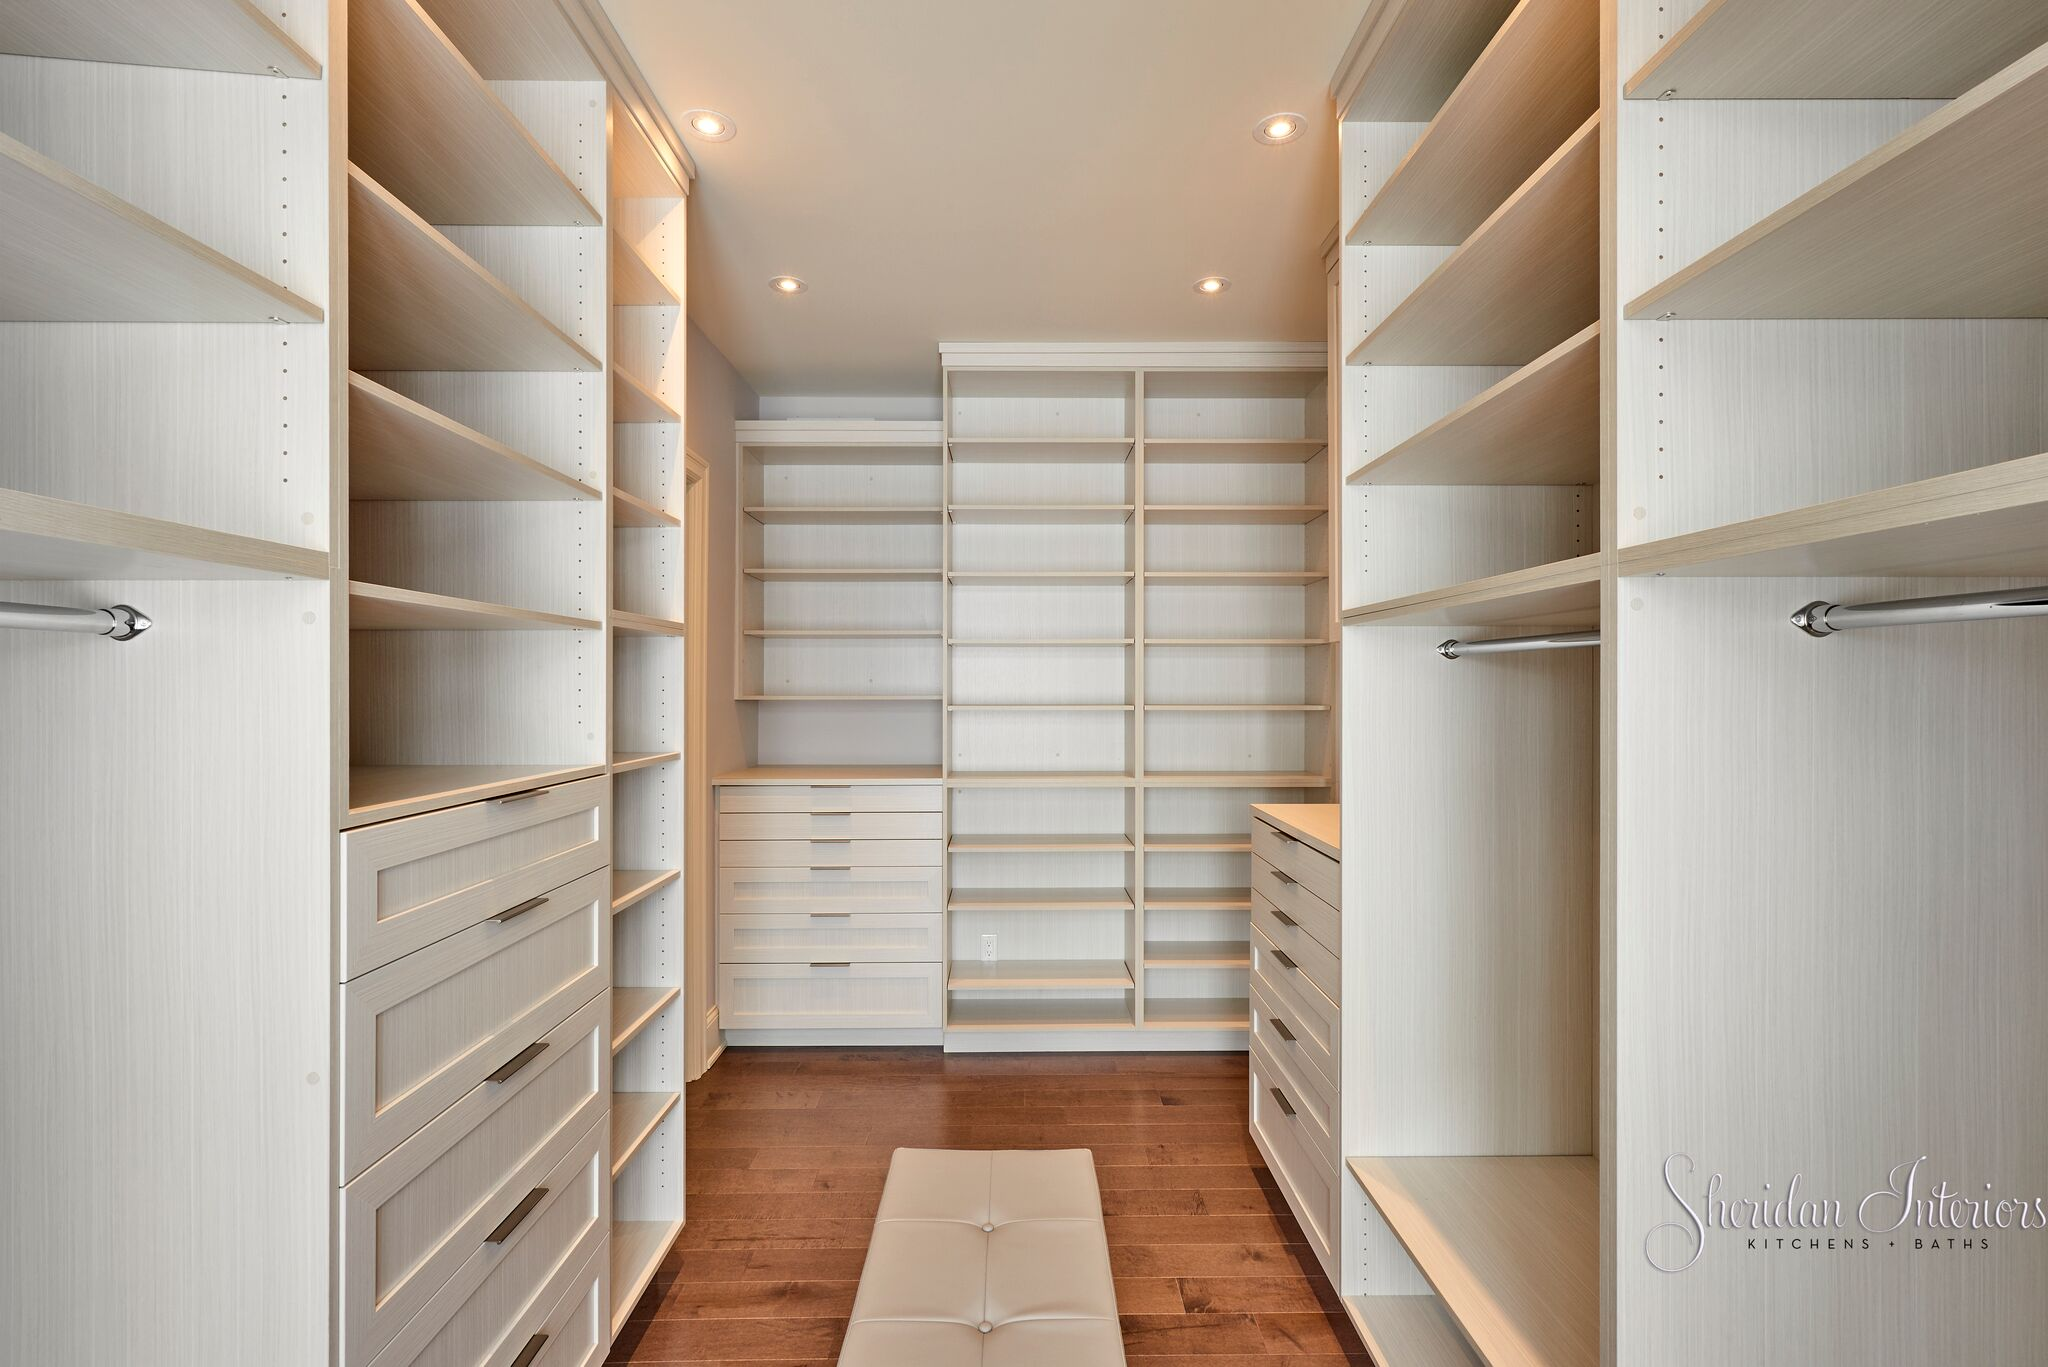 Master Bedroom Walk-in Closet - Sheridan Interiors